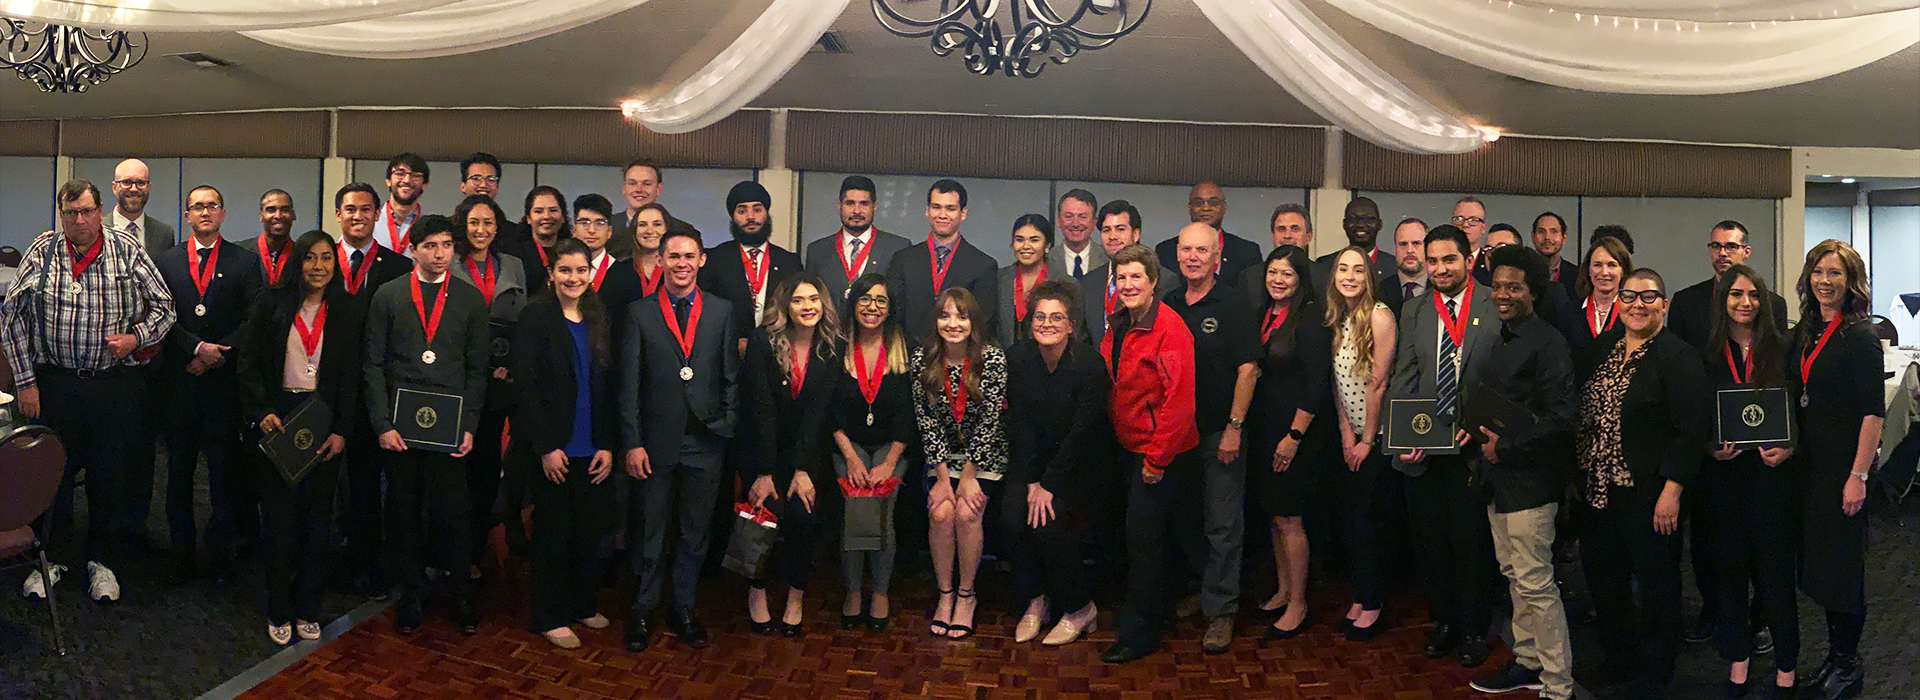 Pi Sigma Alpha names CSUSB chapter as best national chapter for 7th consecutive year